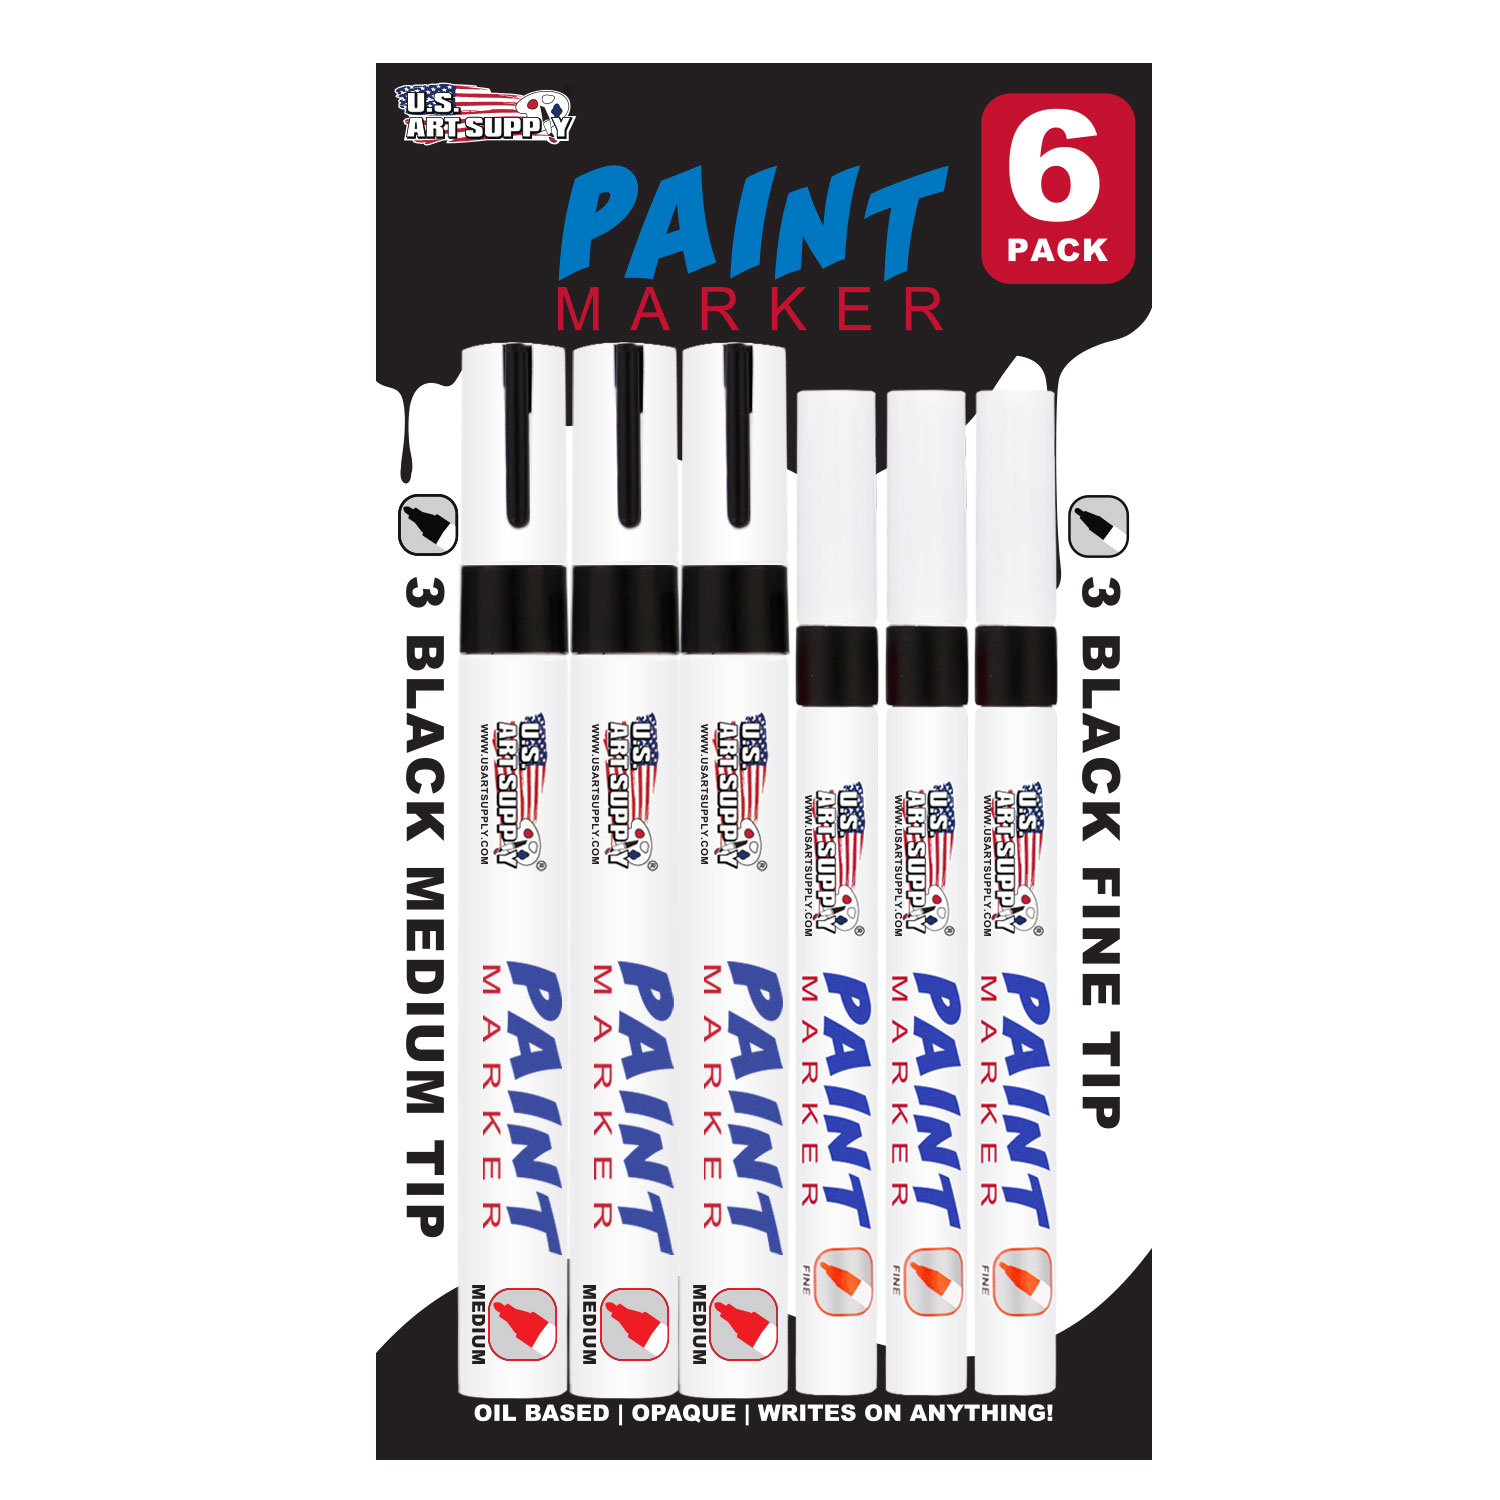 U.S. Art Supply Set of 6 Black Oil Based Paint Pen Markers, 3 Medium and 3 Fine Point Tips - Permanent Ink